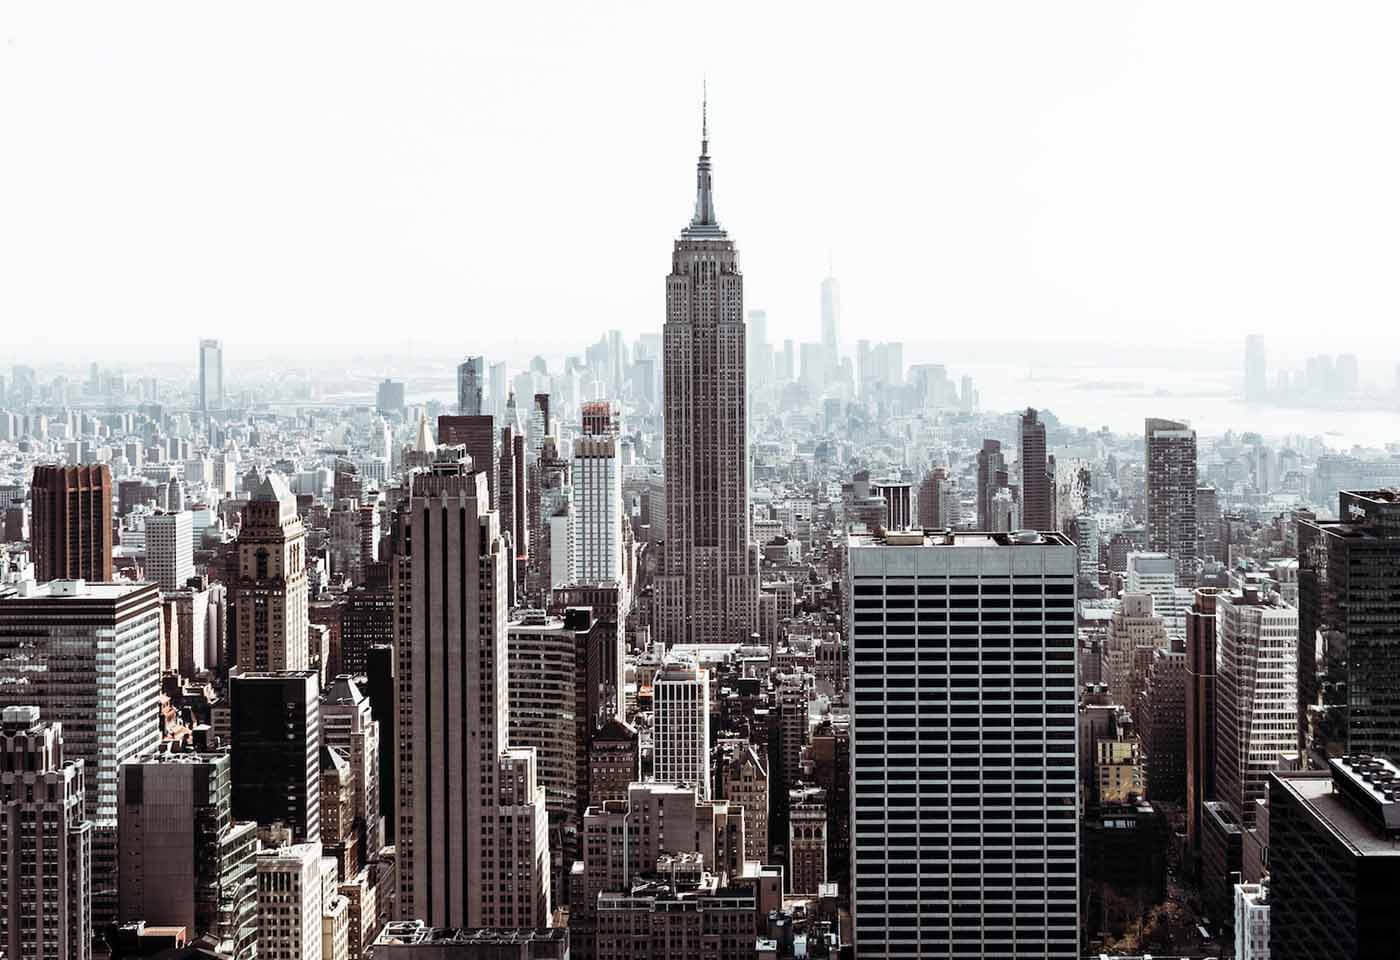 Landscape image of New York City